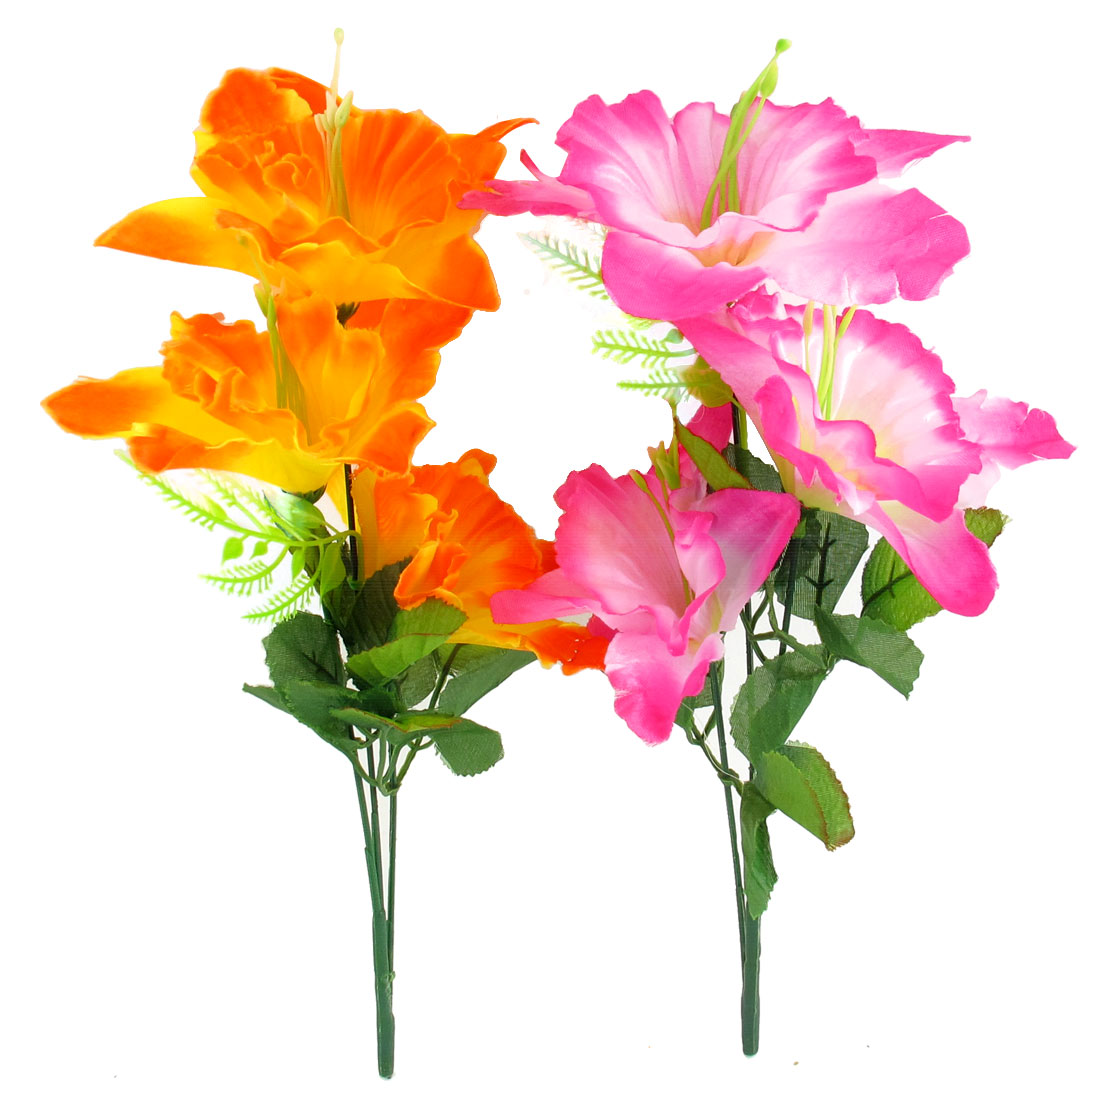 2 Pcs Wedding Party Artificial Fabric Fuchsia Orange Flower Bouquet 32cm High